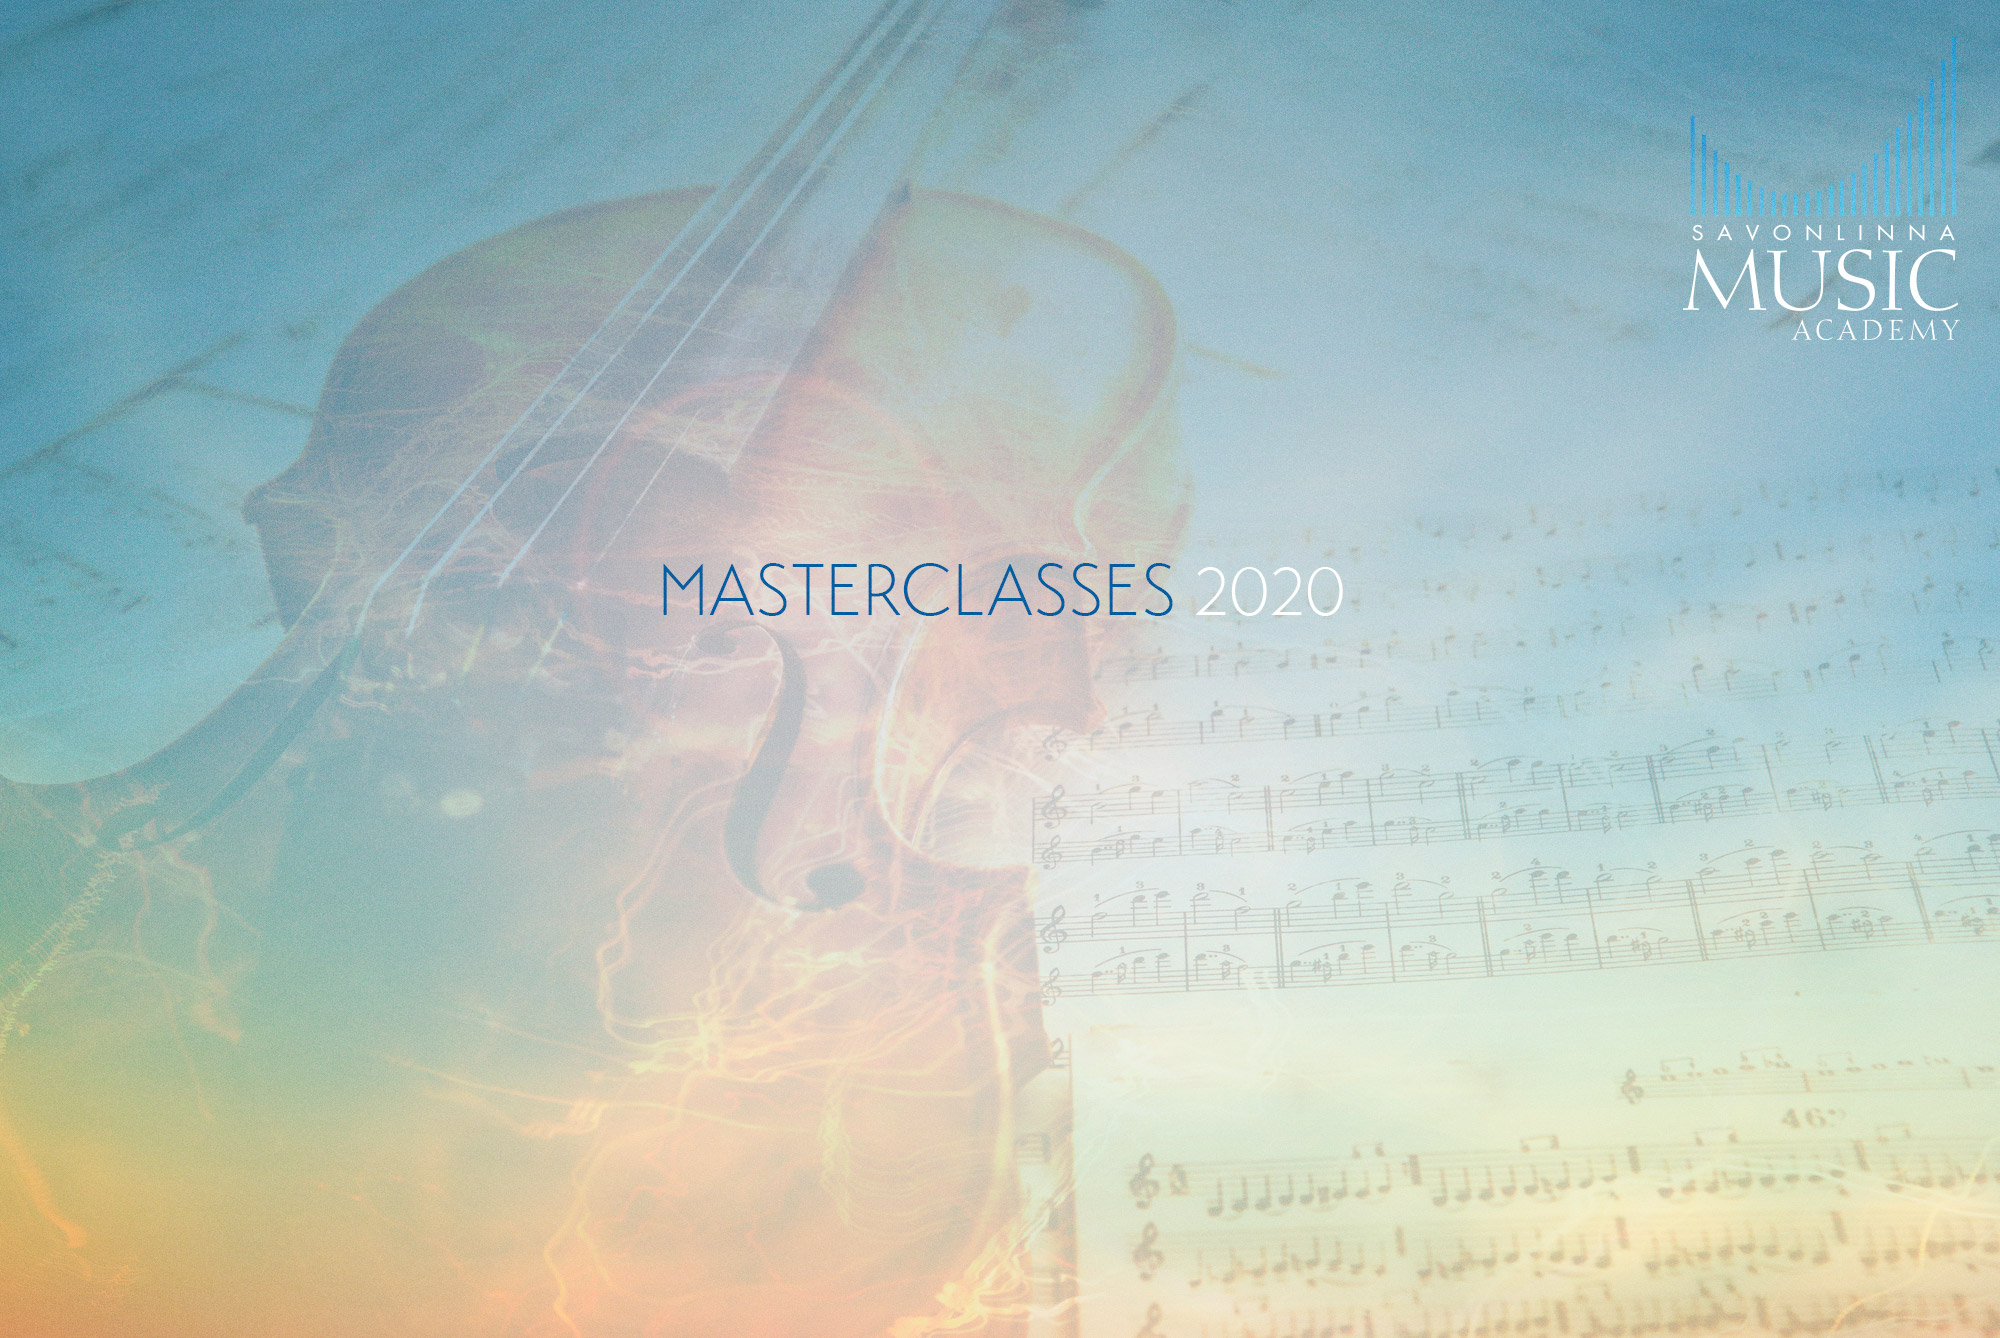 Master class arrangements and accommodation